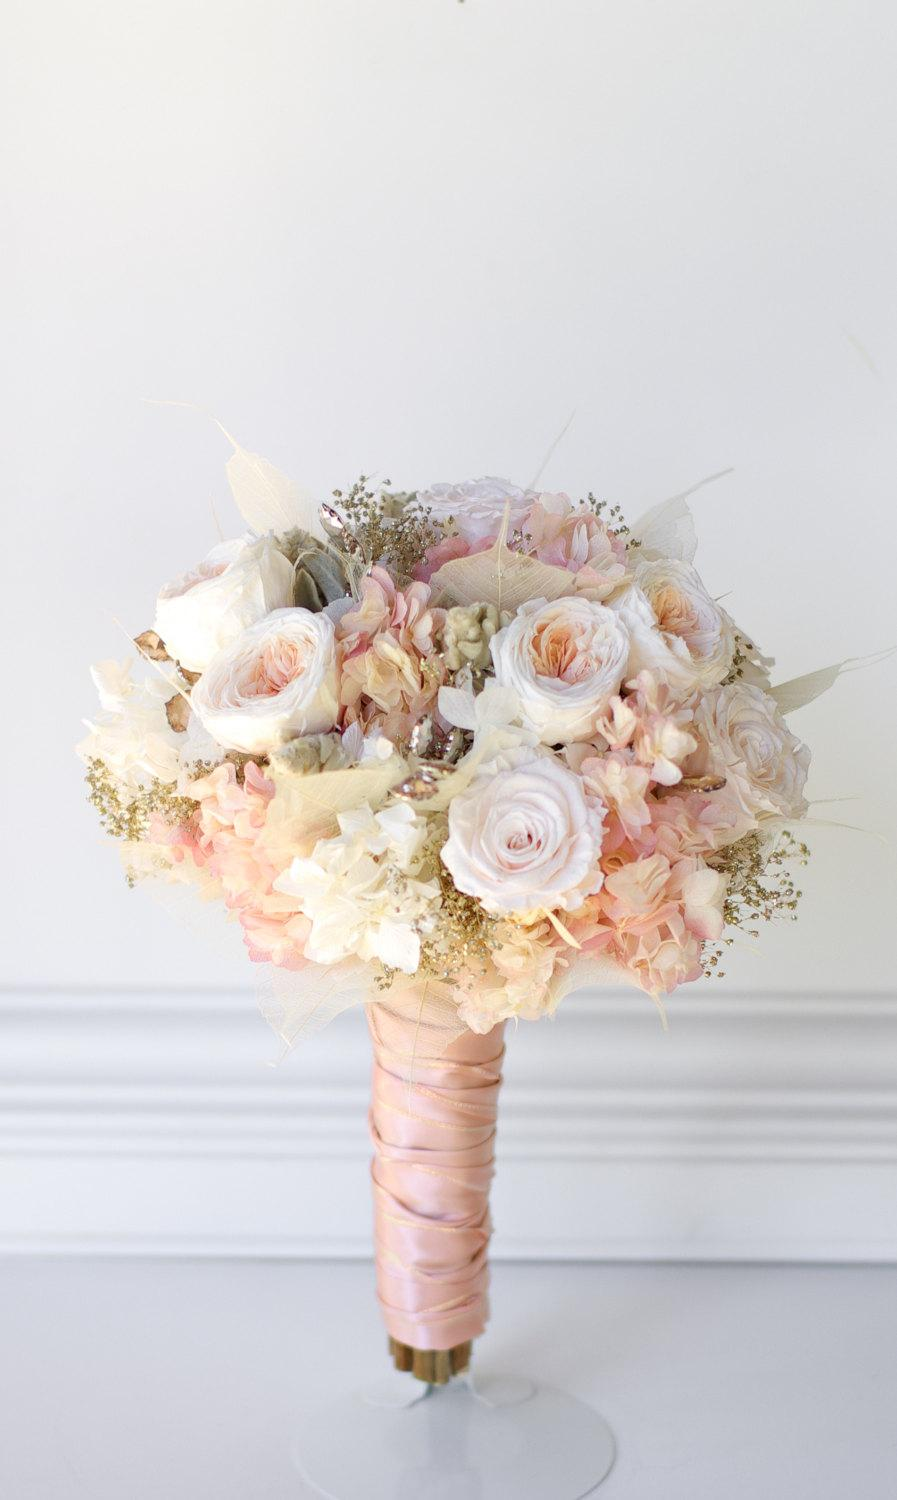 Rose gold bridal bouquet preserved flowers not dried flowers pink rose gold bridal bouquet preserved flowers not dried flowers pink and white roses hydrangea gold babies breath matching bridesmaids izmirmasajfo